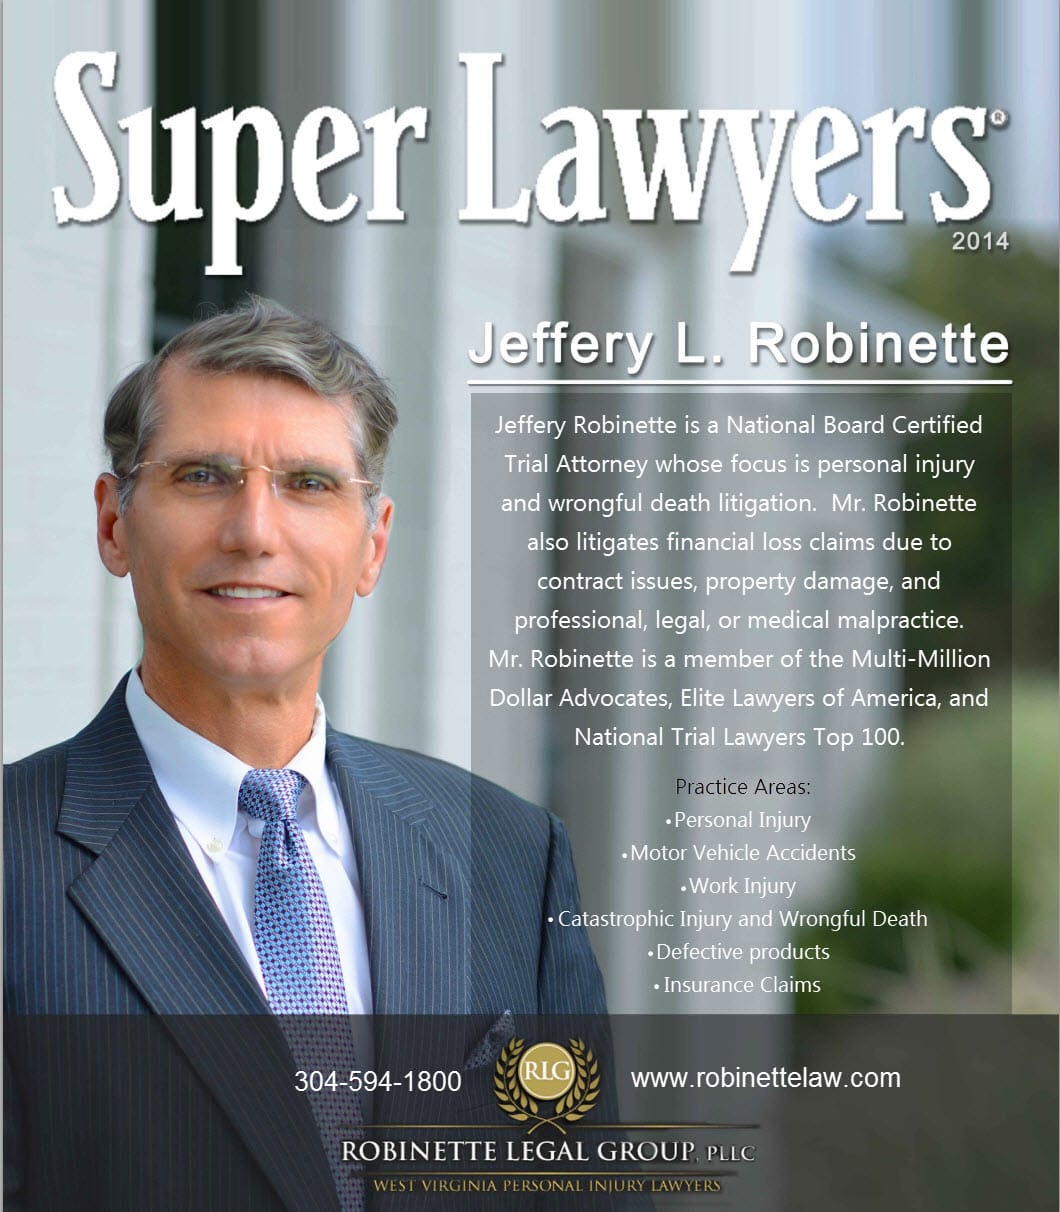 West Virginia Personal Injury Lawyers – Home